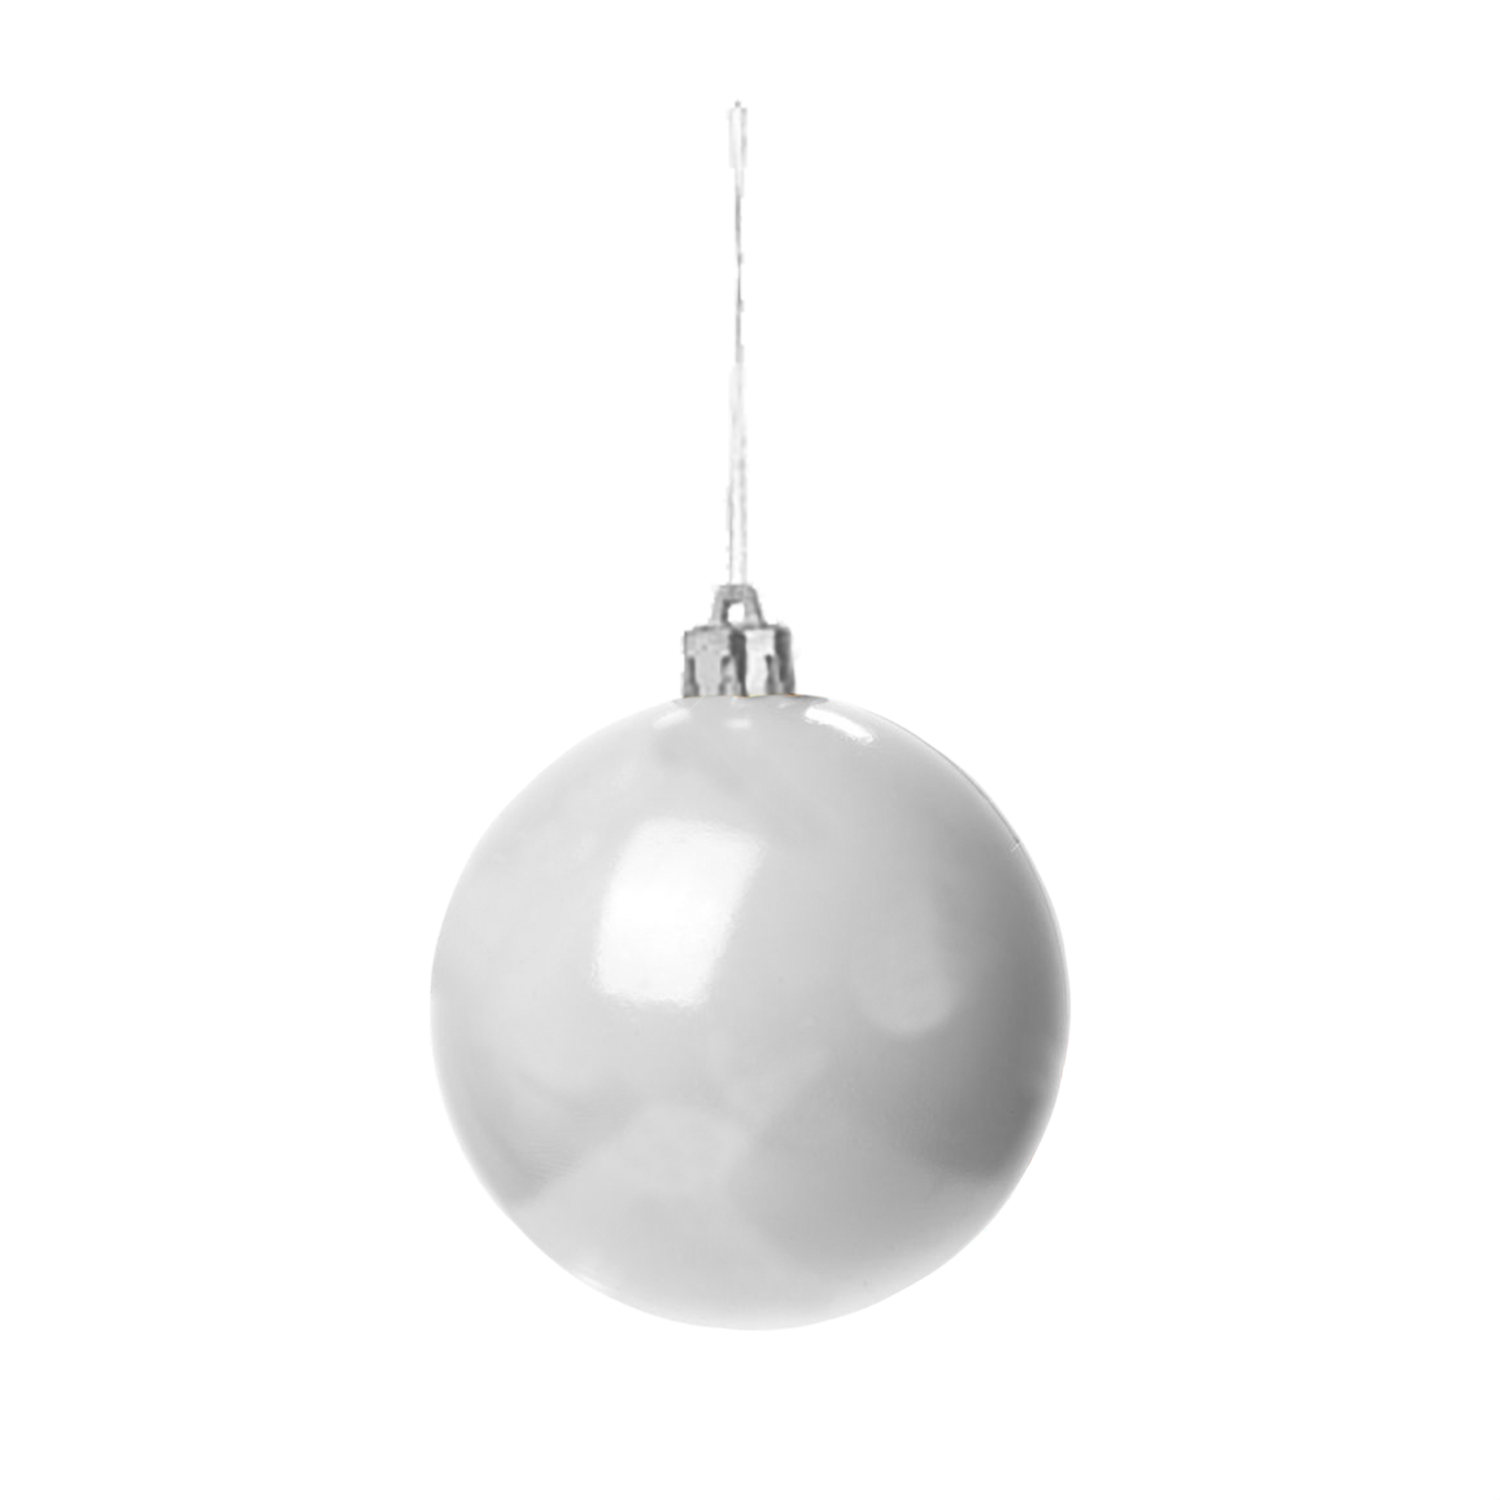 Christmas Ball 098 (8cm Christmas ornaments) - hmi99098-02 (white)